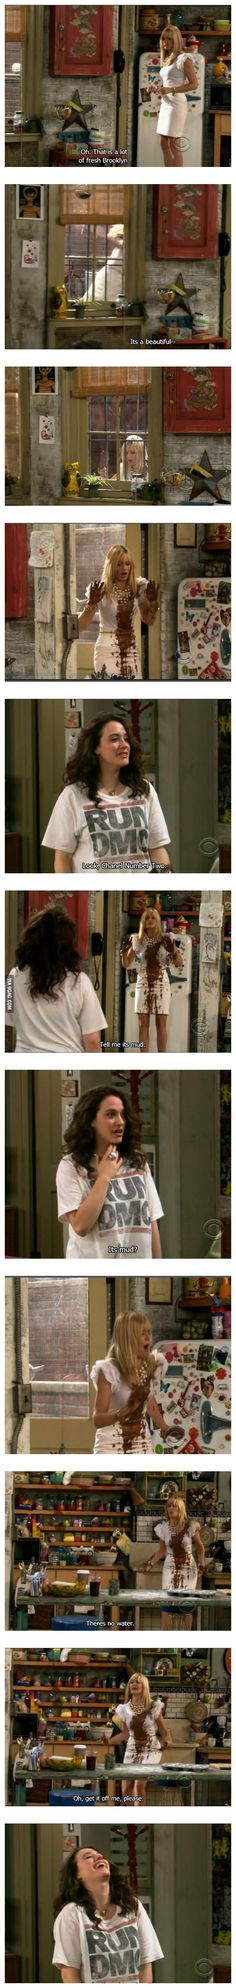 2 broke girls... Max being Max